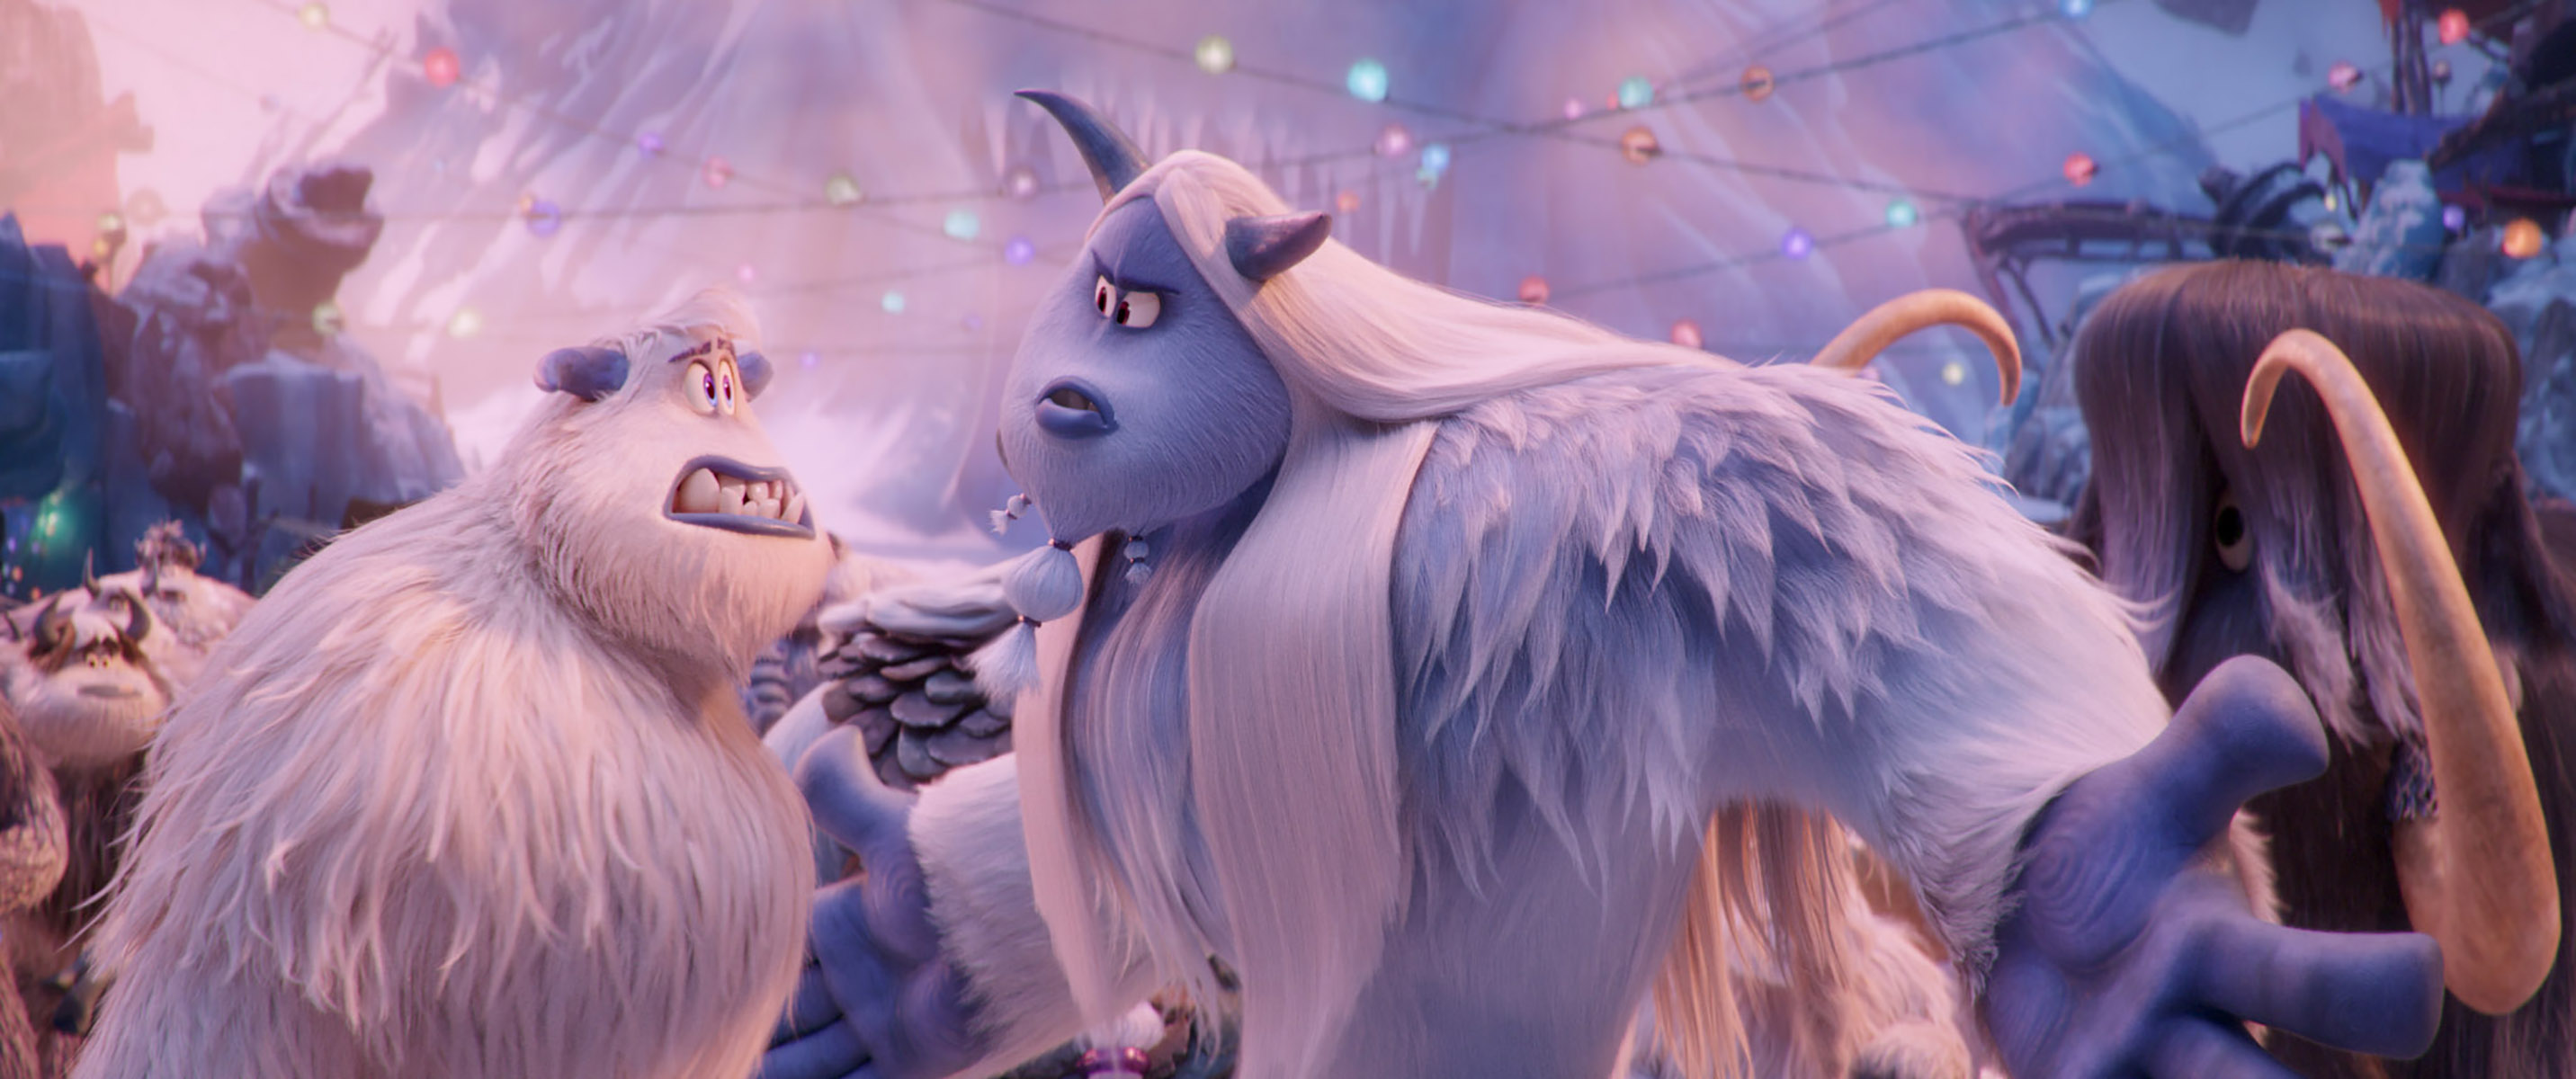 Smallfoot Gallery 18